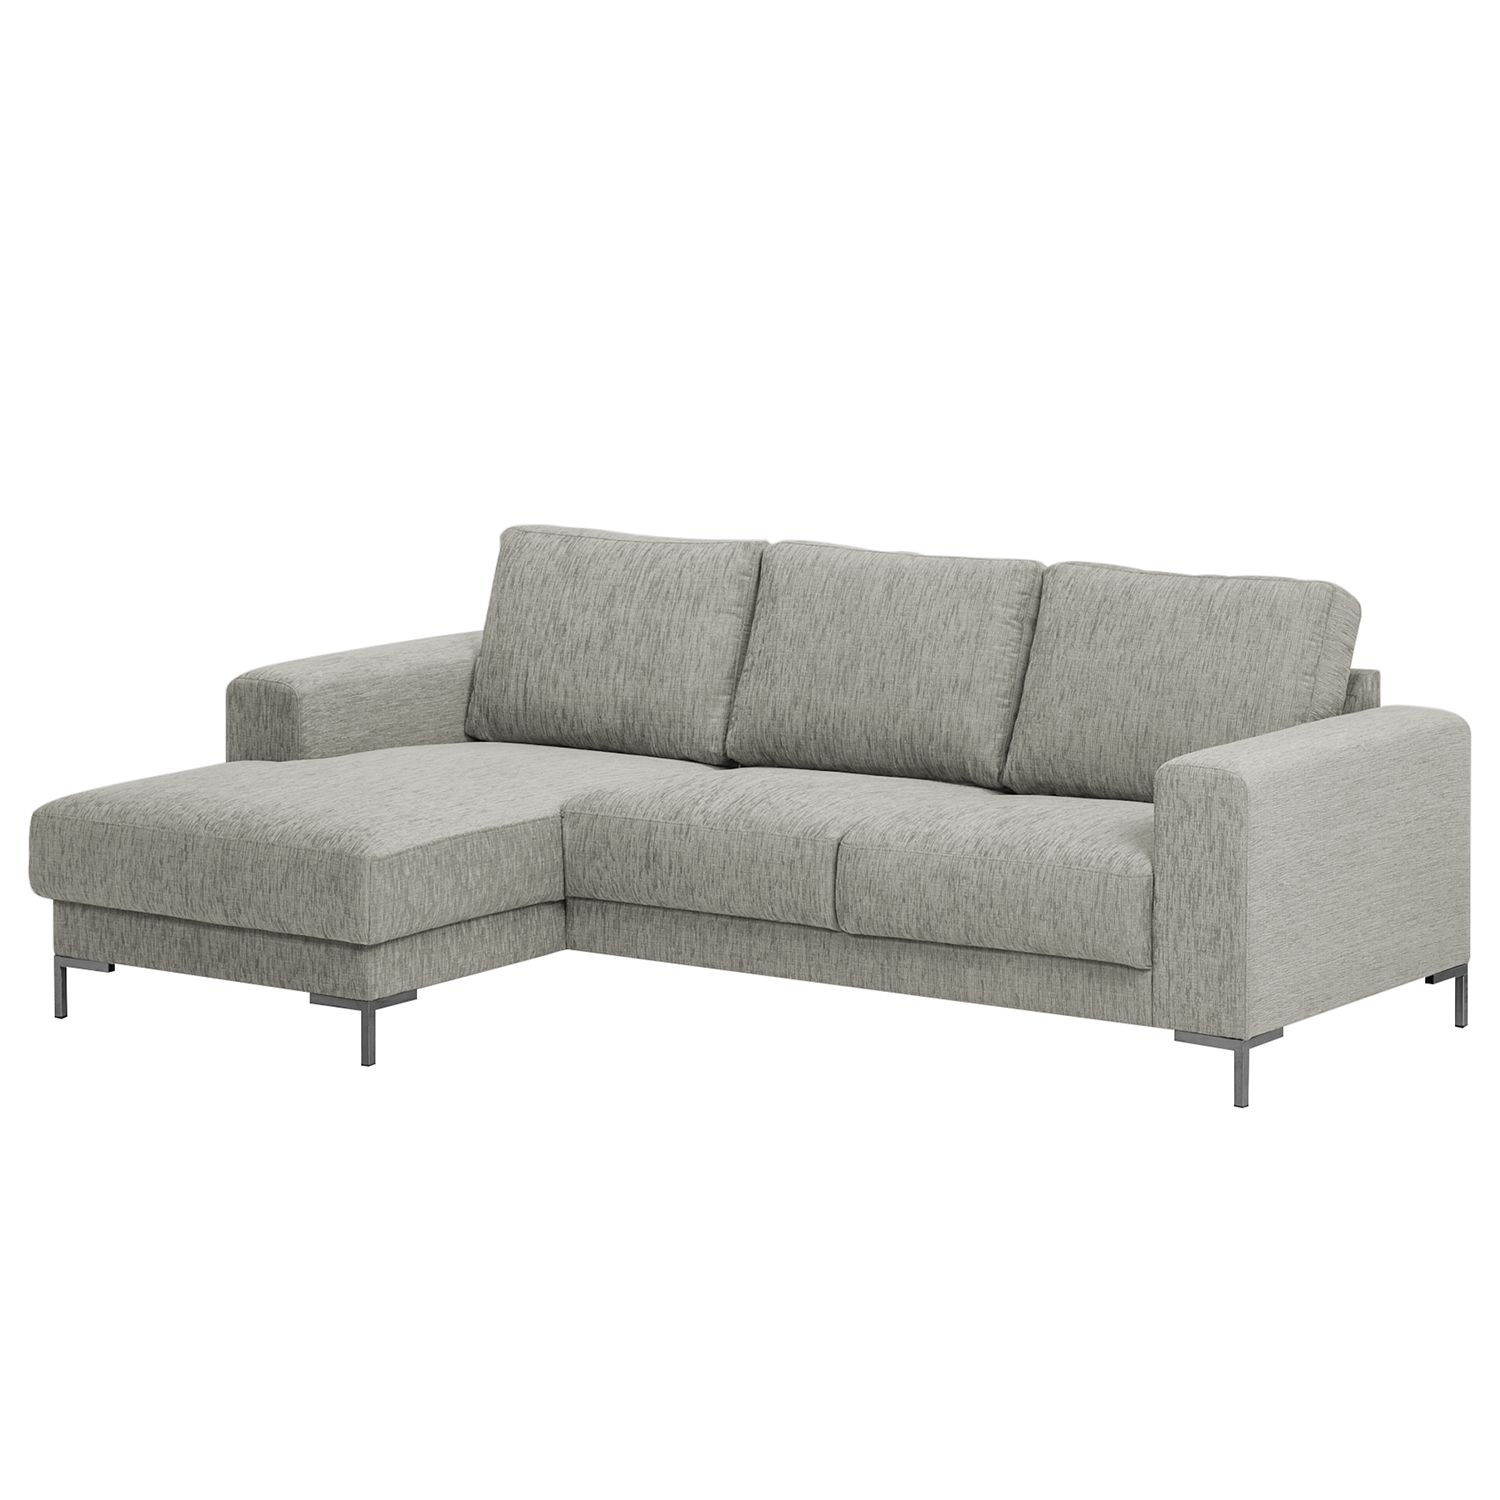 Ecksofa Summer Webstoff